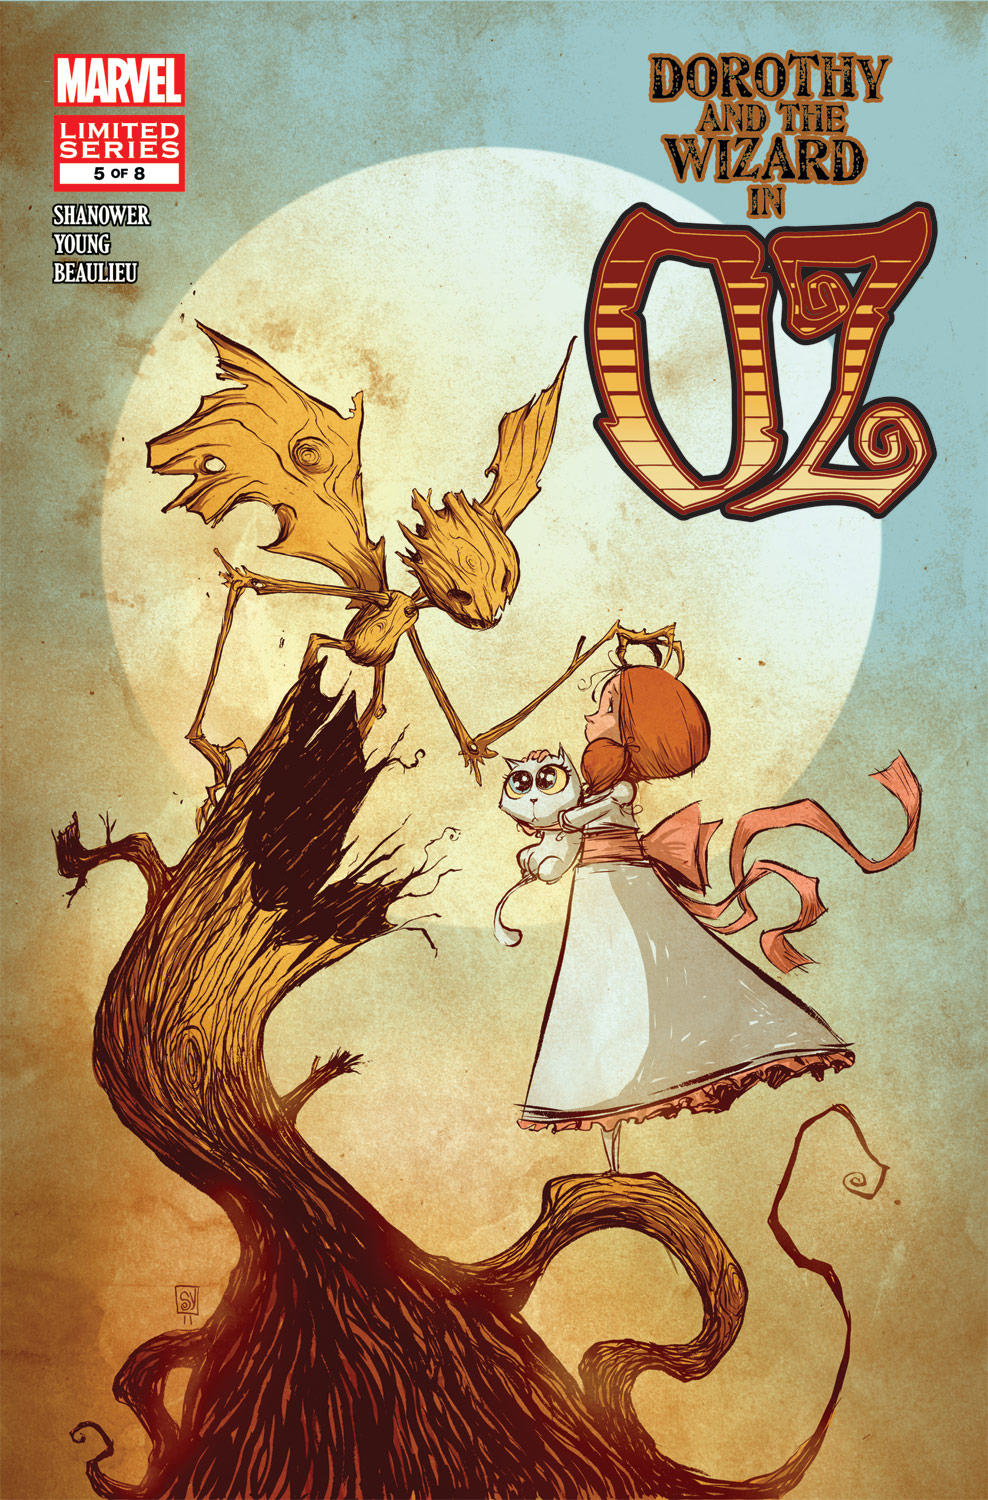 Dorothy & the Wizard in Oz (2010) #5